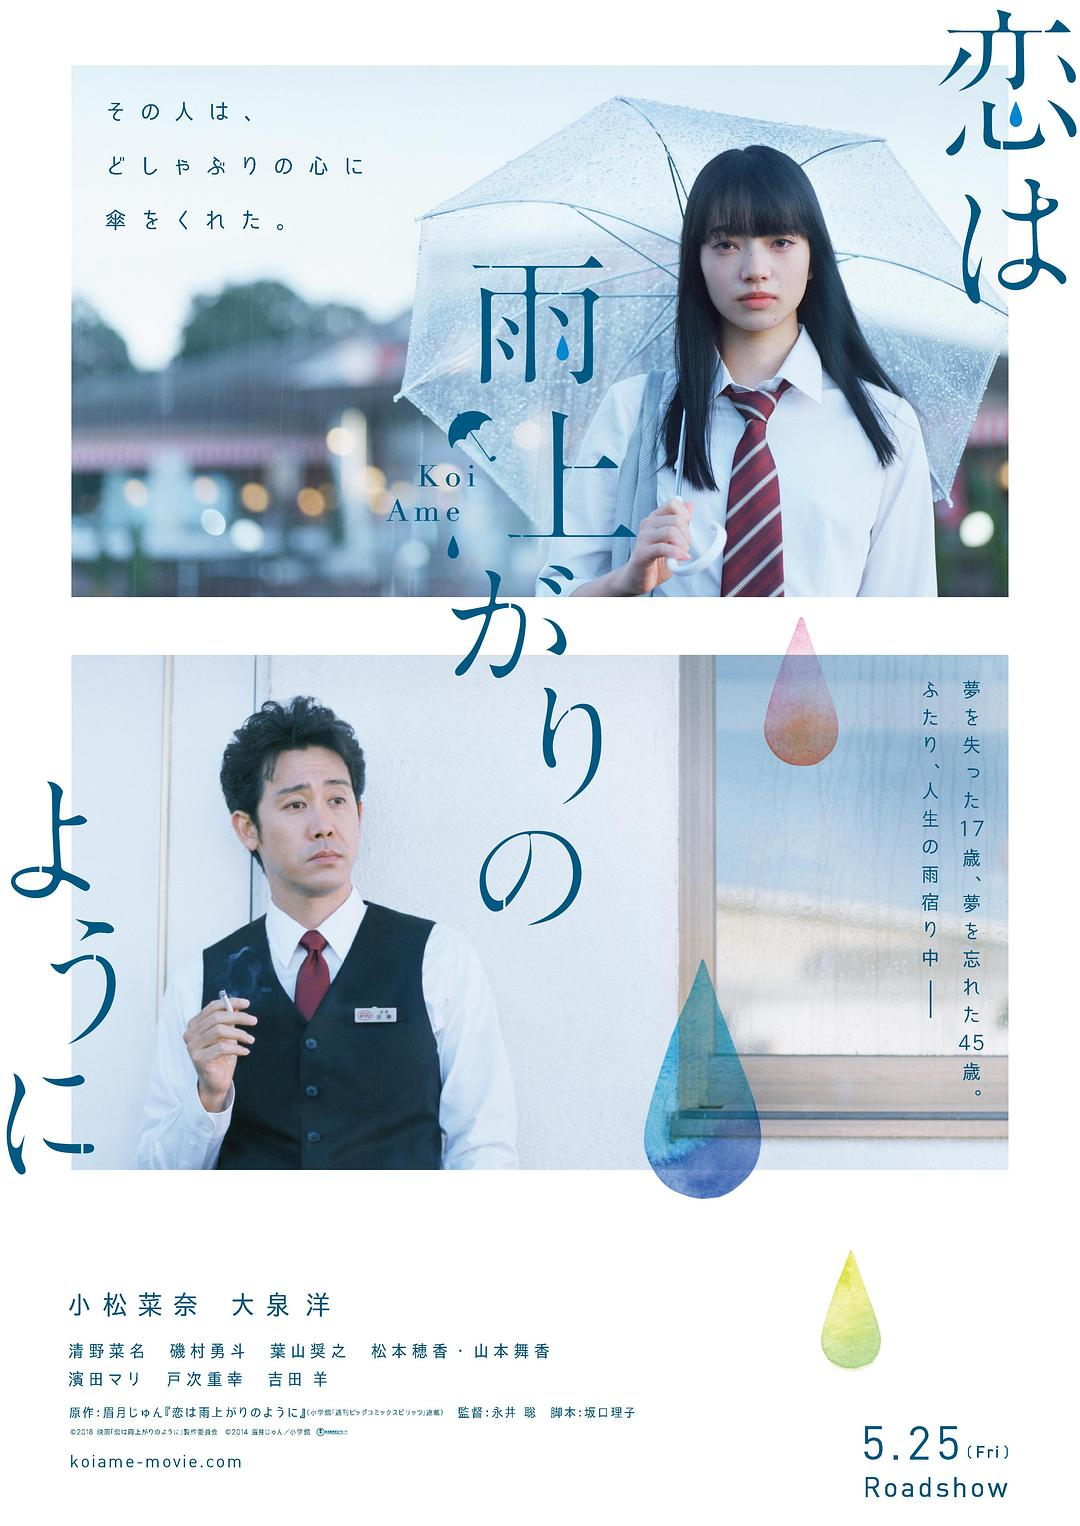 悠悠MP4_MP4电影下载_恋如雨止 After.The.Rain.2018.JAPANESE.1080p.BluRay.x264-iKiW 9.75GB